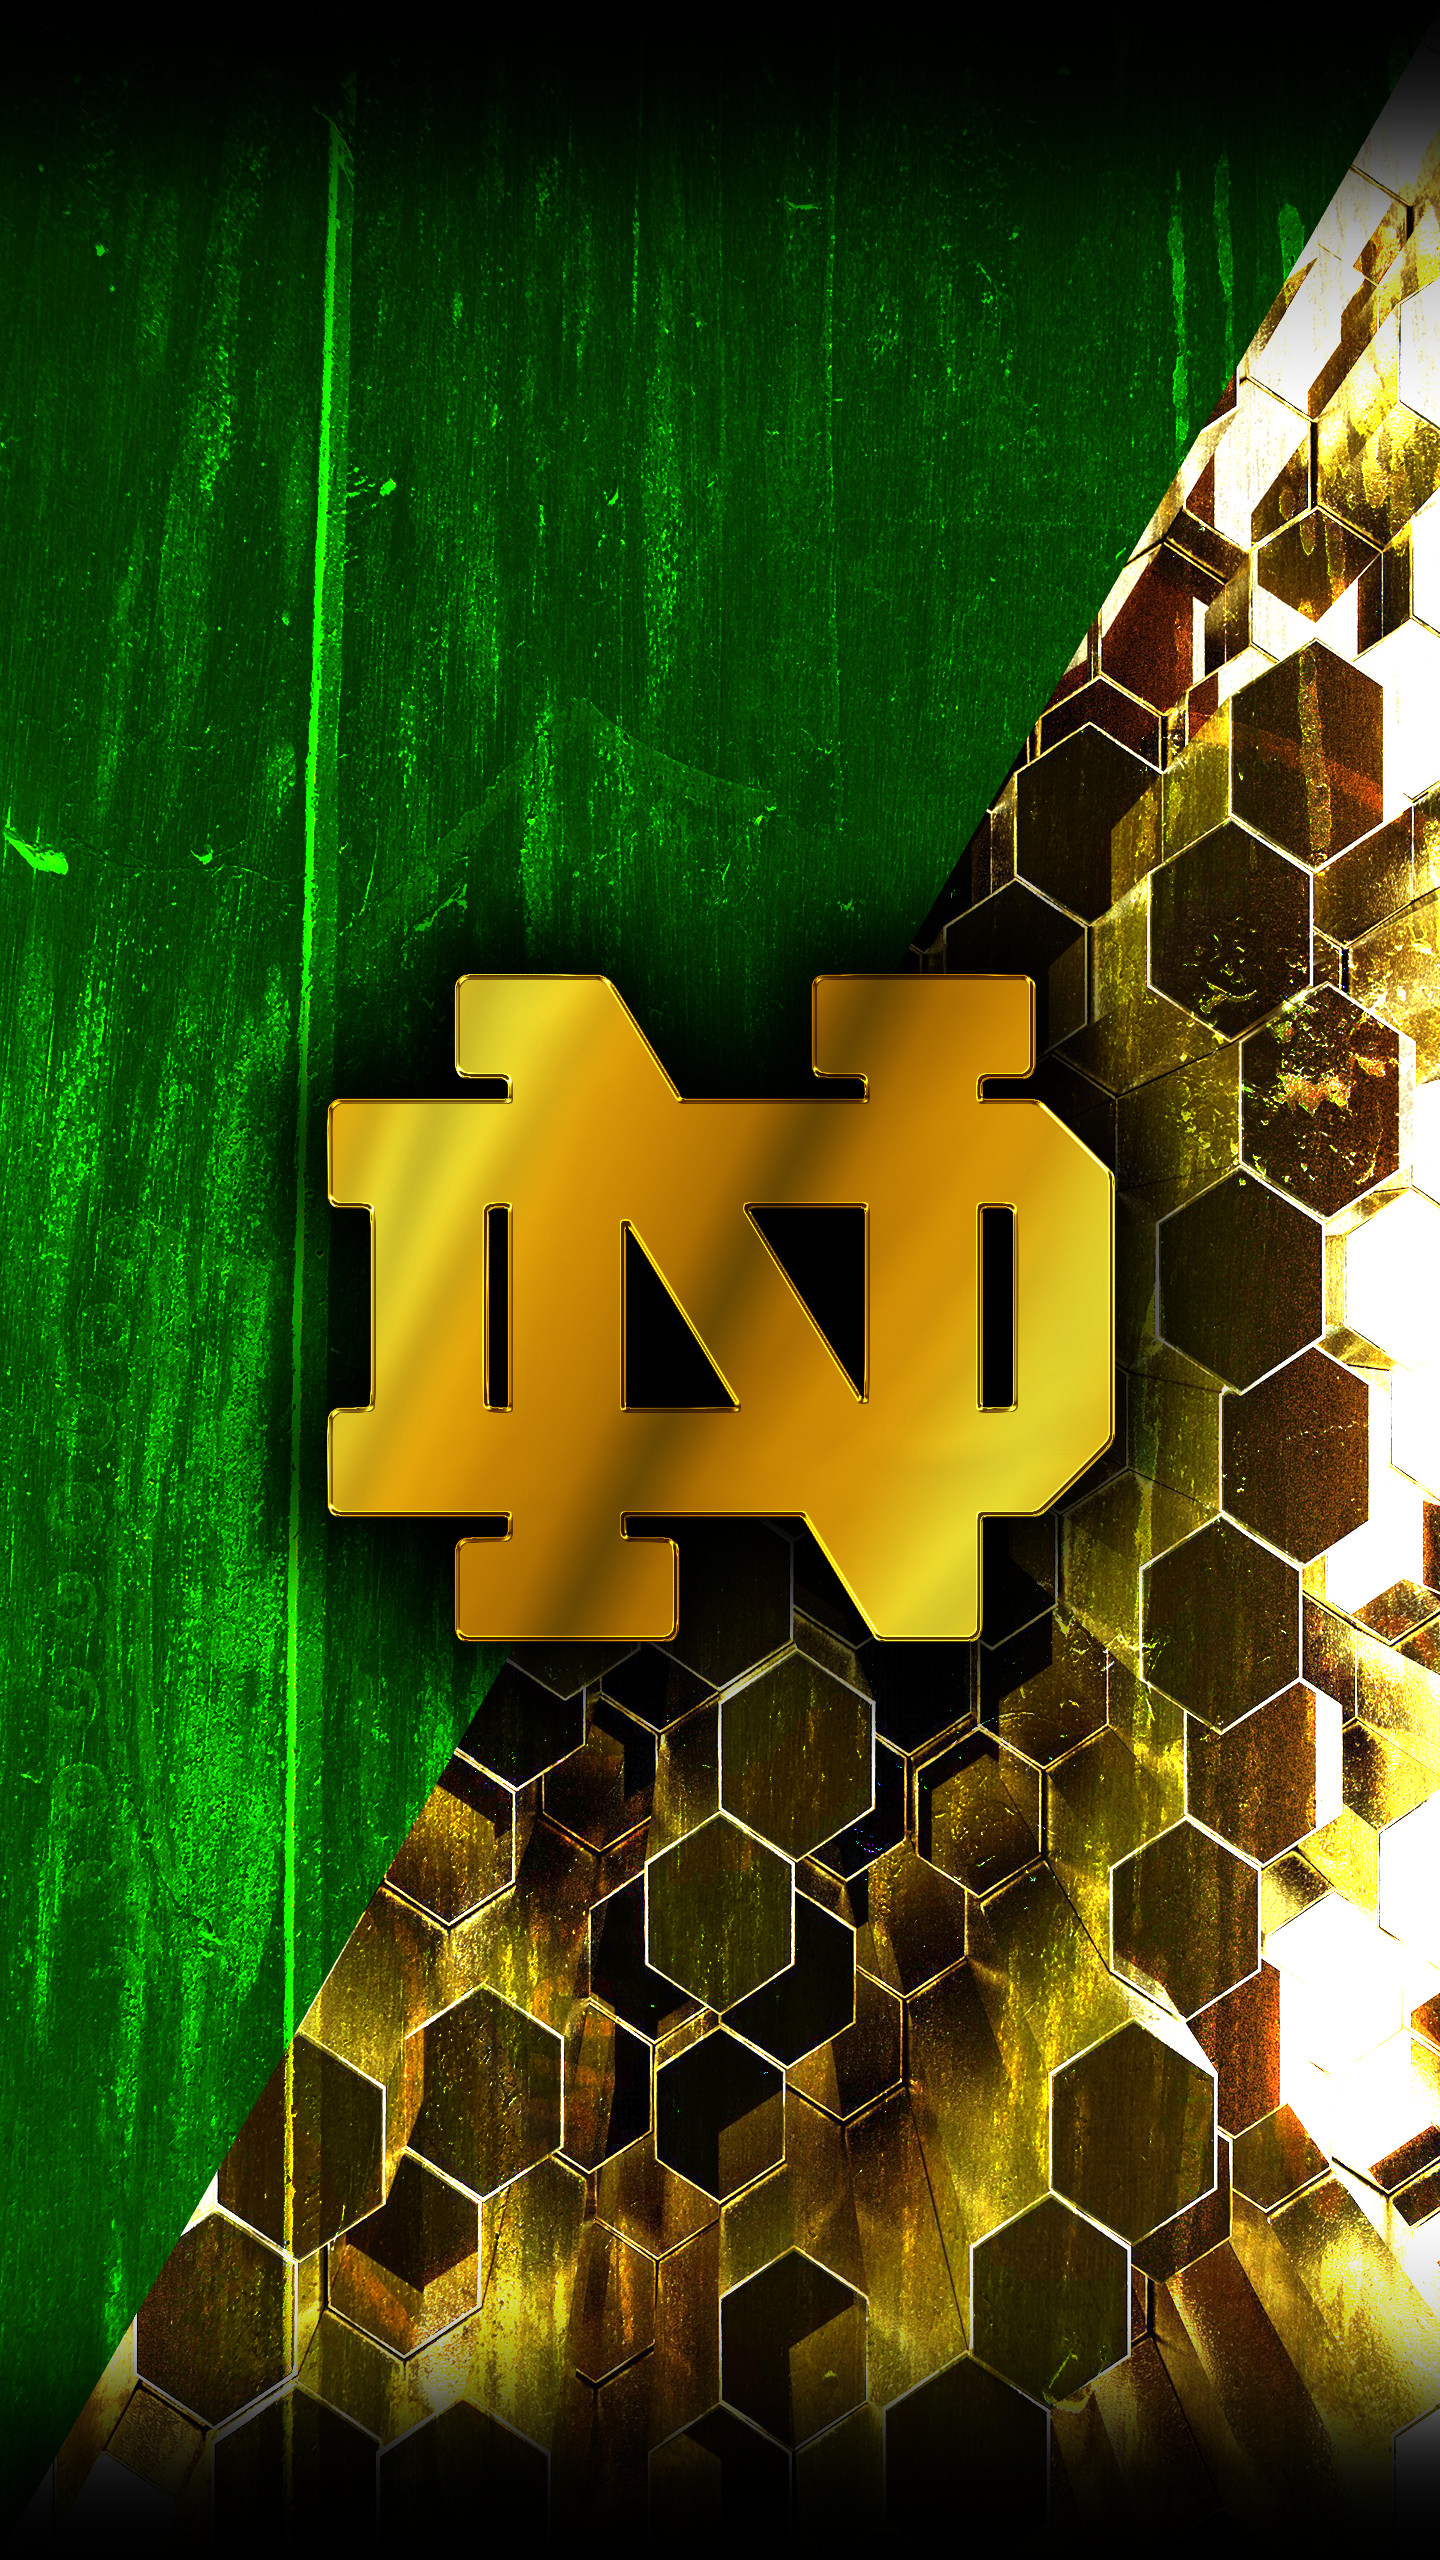 Notre dame logo wallpaper 70 images - Notre dame football wallpaper ...